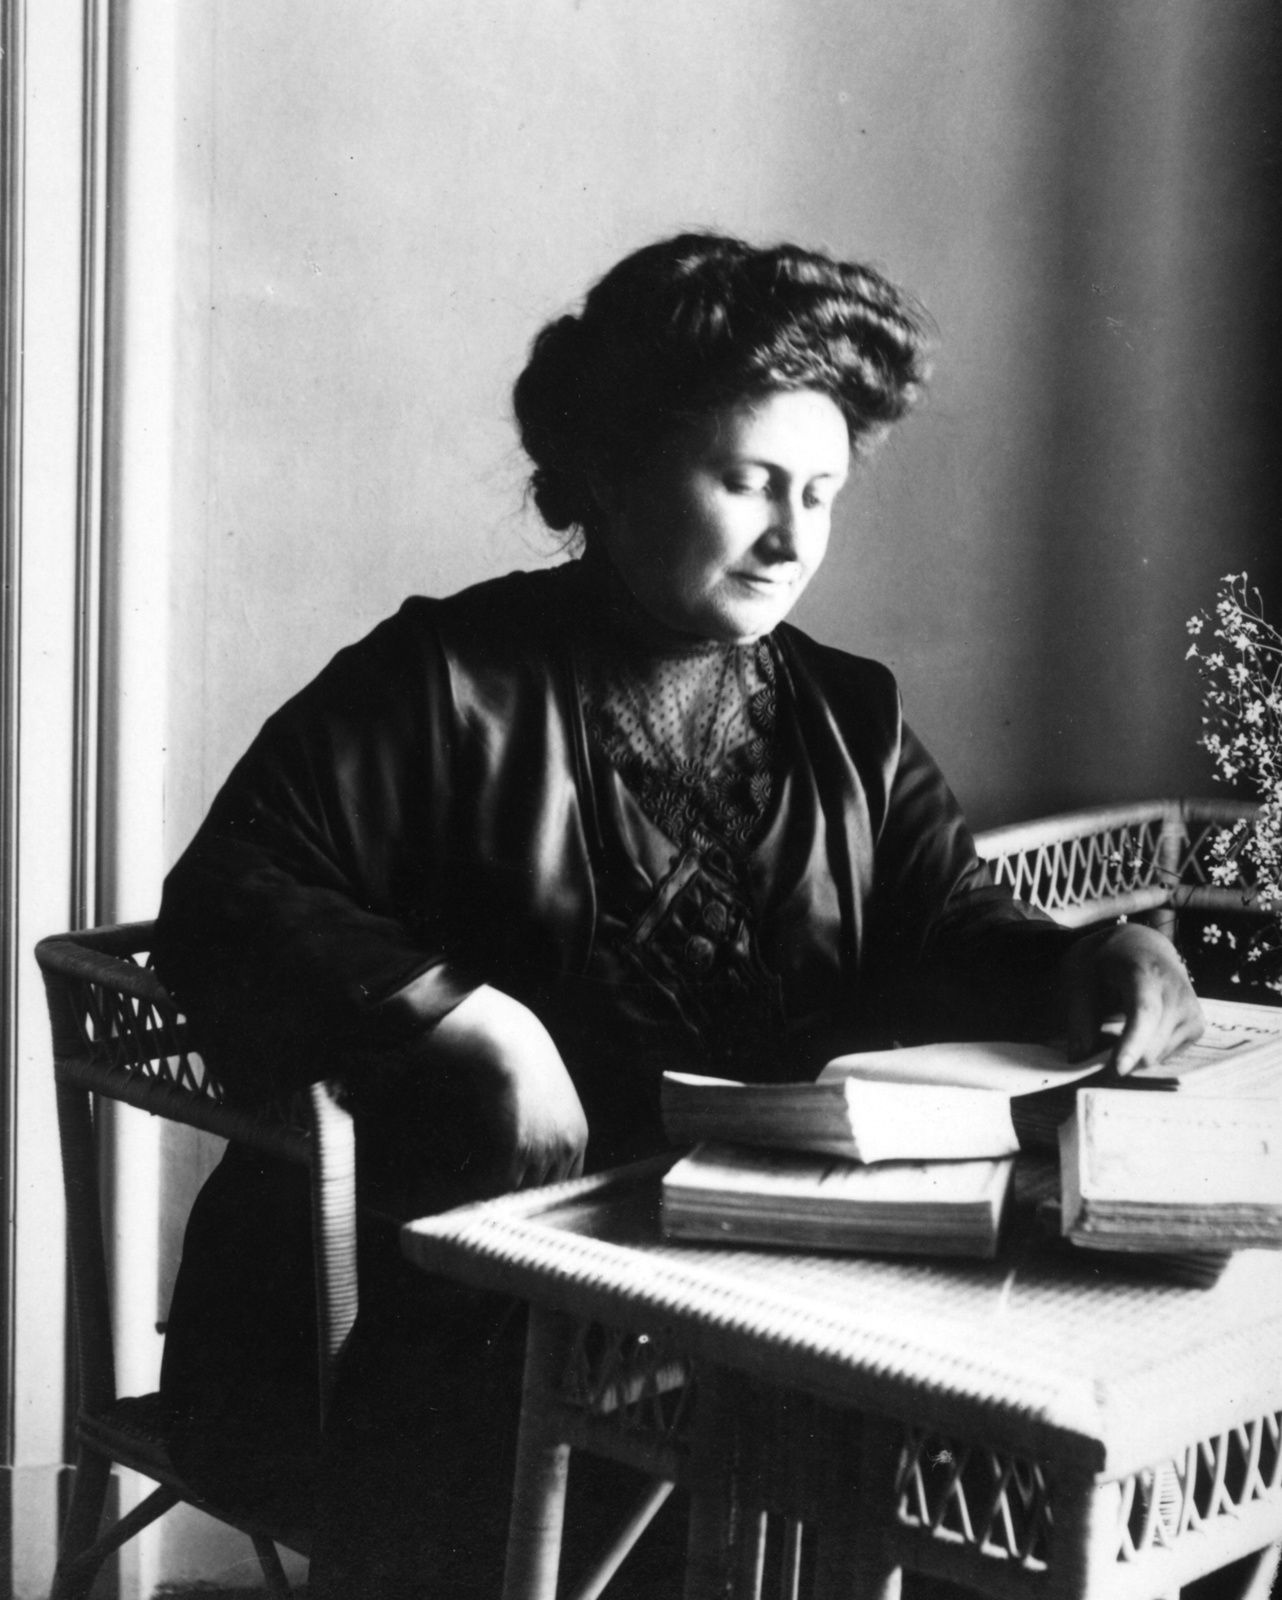 De l'influence possible de Maria Montessori sur la formation des adultes